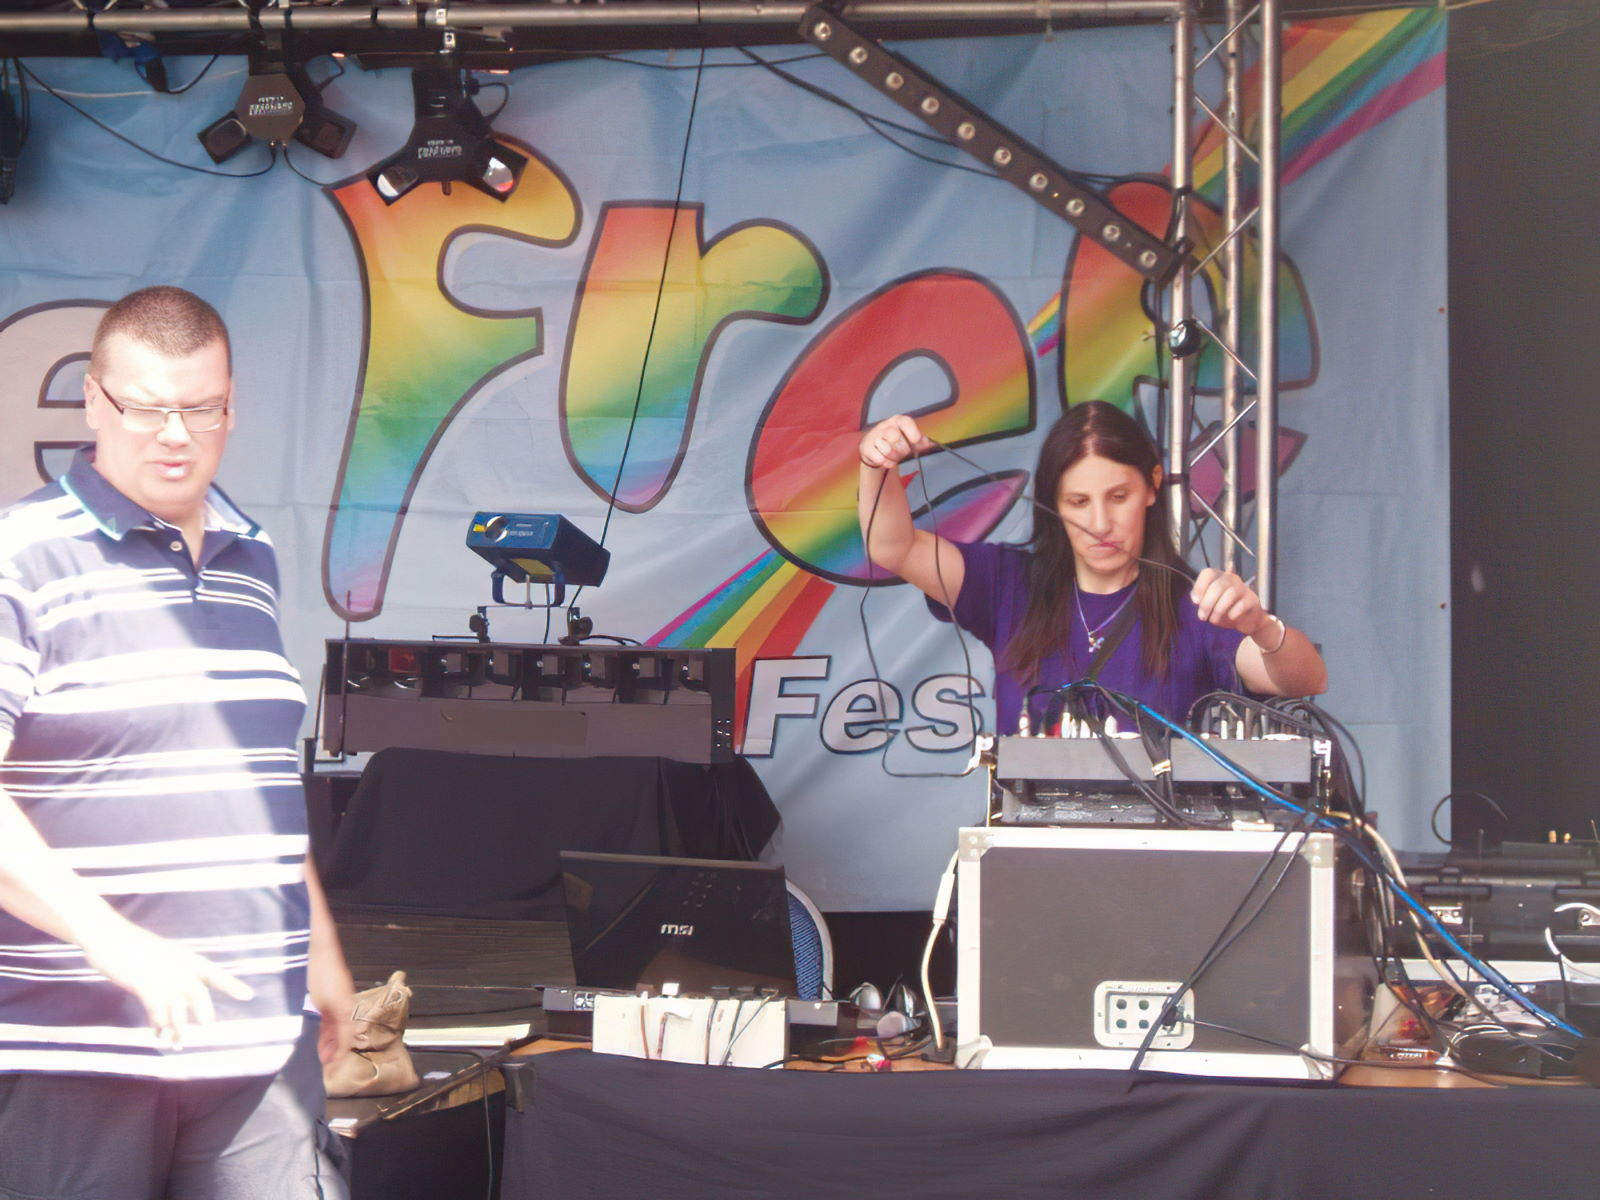 Me setting up the mixing desk for the open air MCC service at this year's Bourne Free Pride Festival.